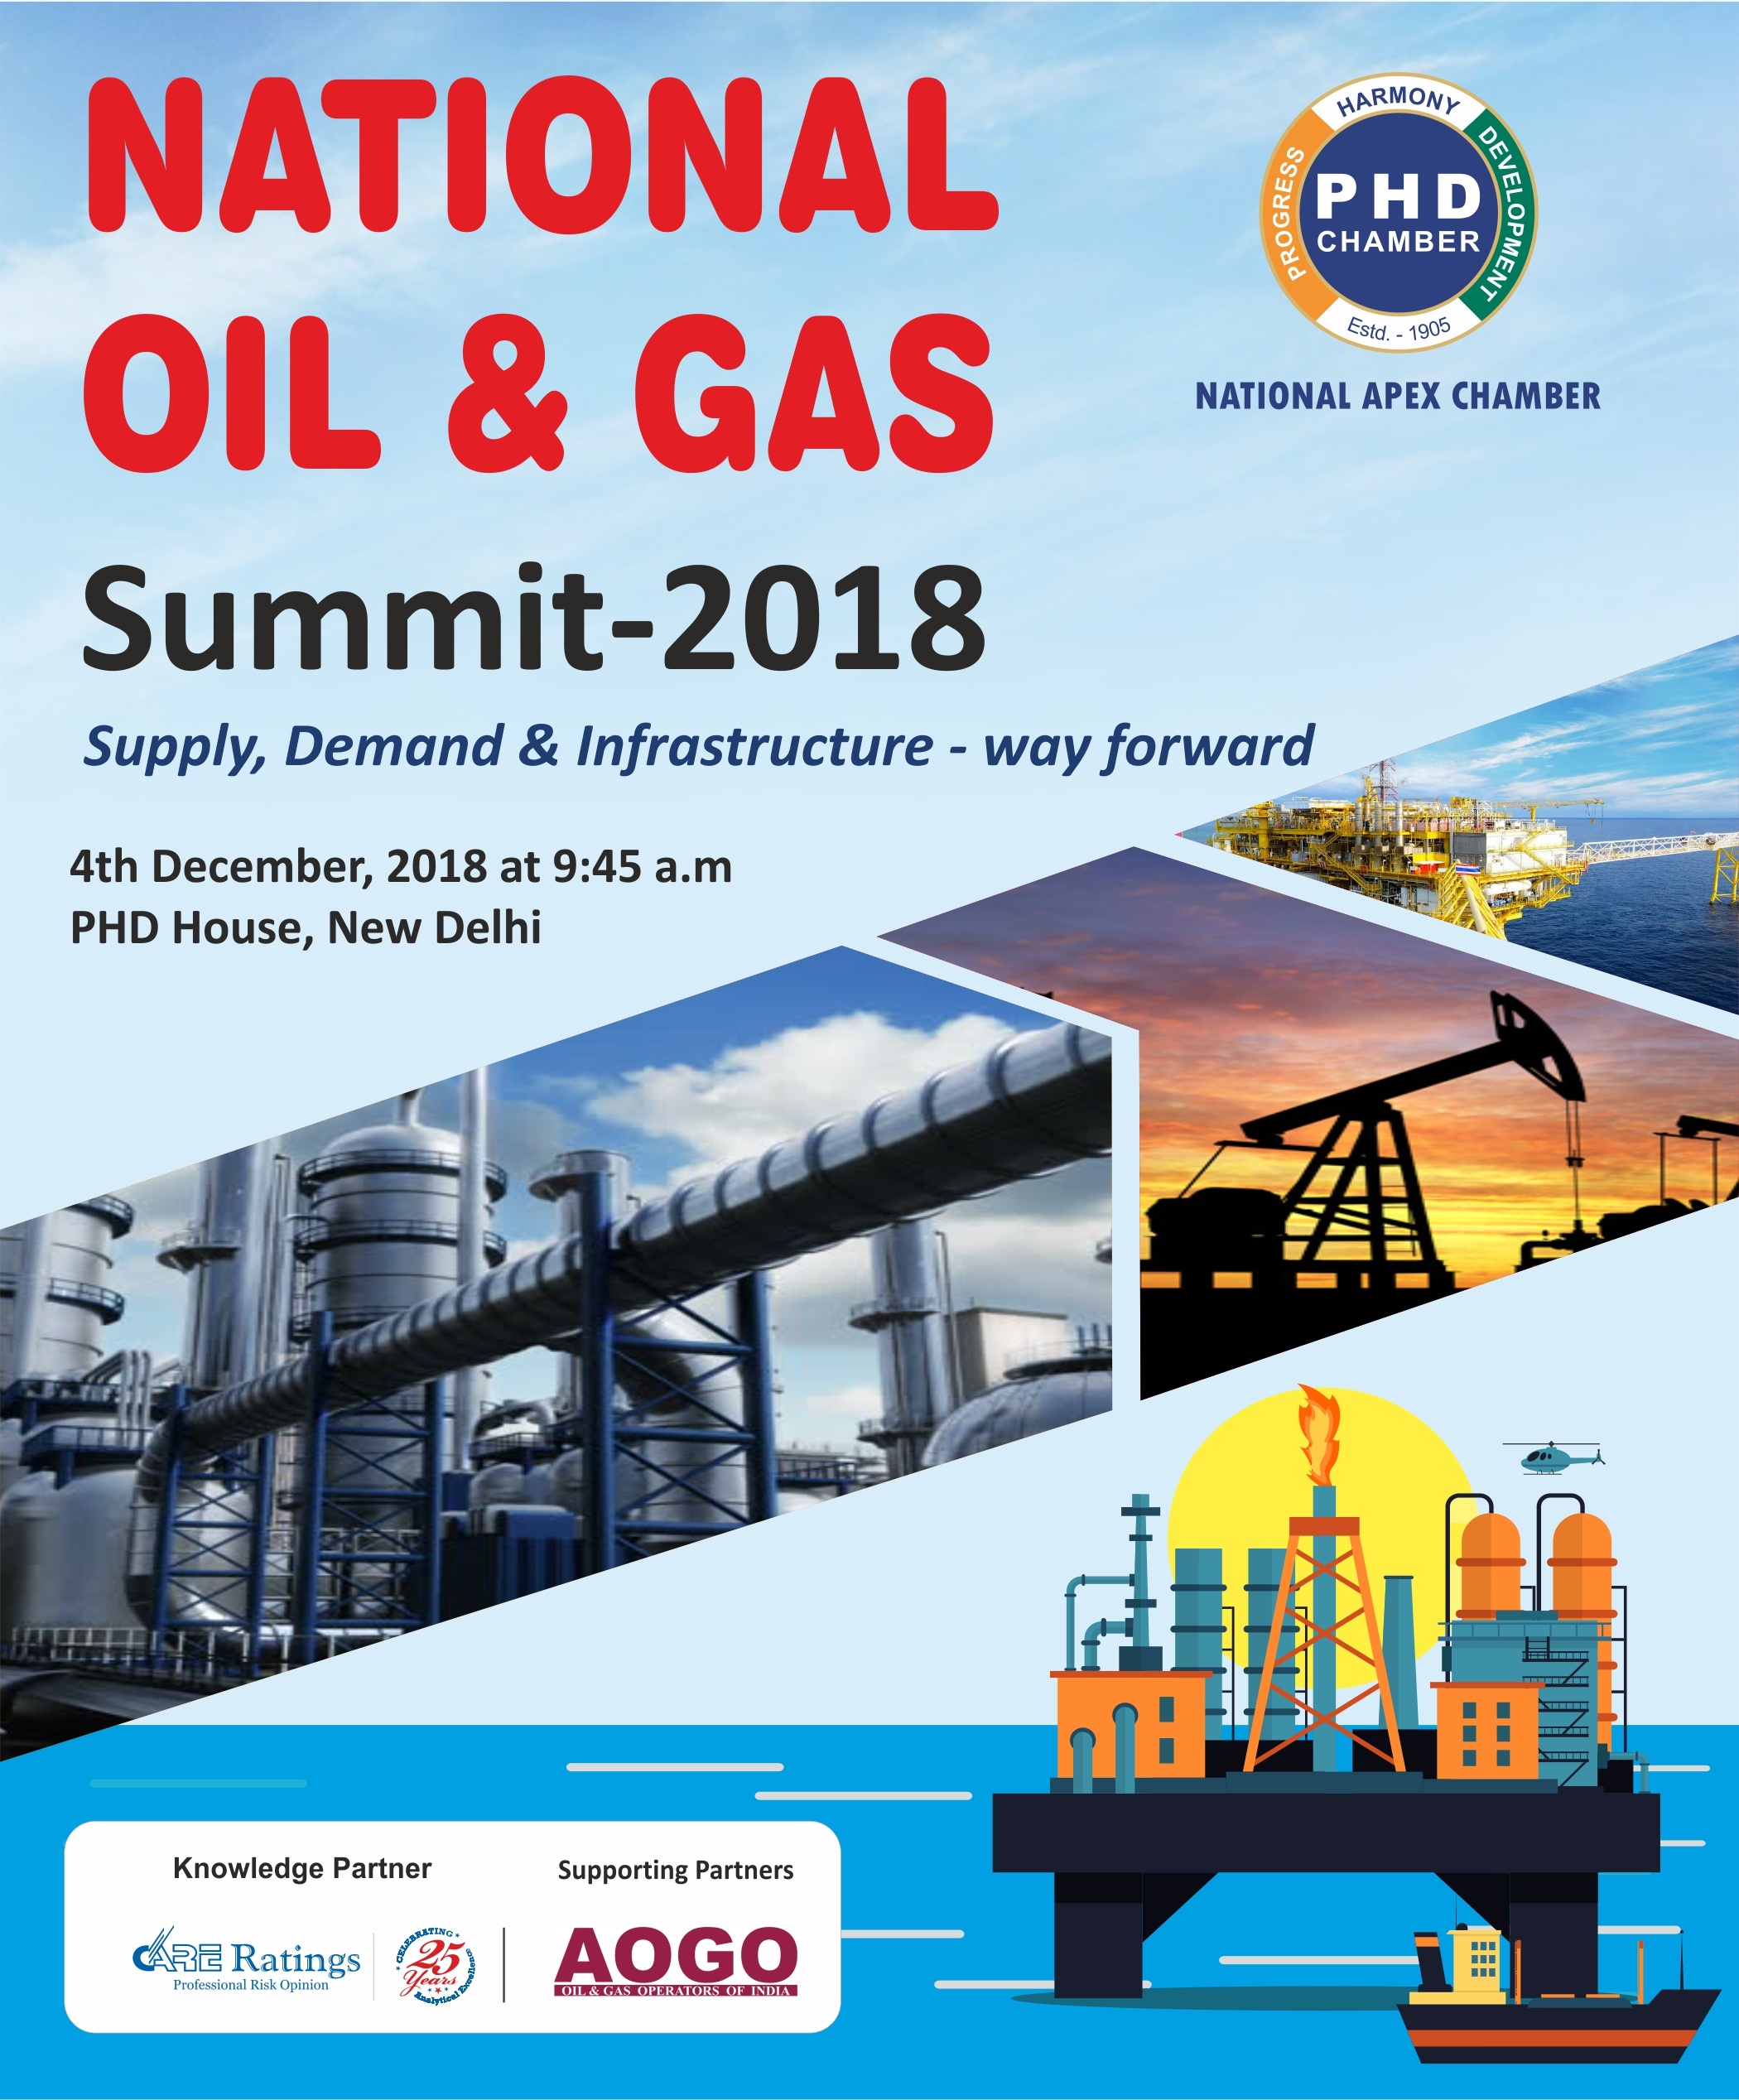 National Oil & Gas Summit -2018